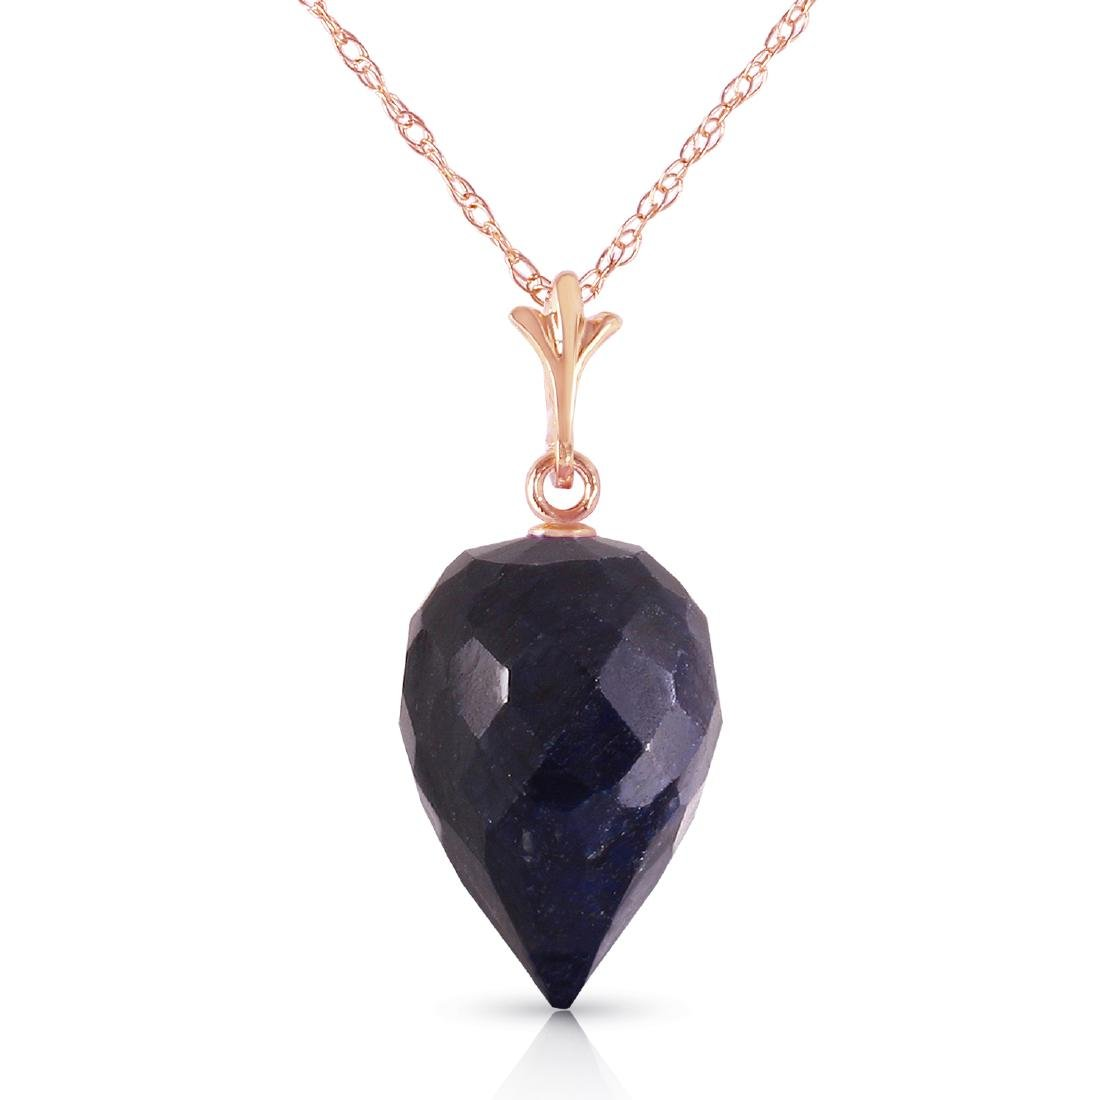 Genuine 12.9 ctw Sapphire Necklace Jewelry 14KT Rose